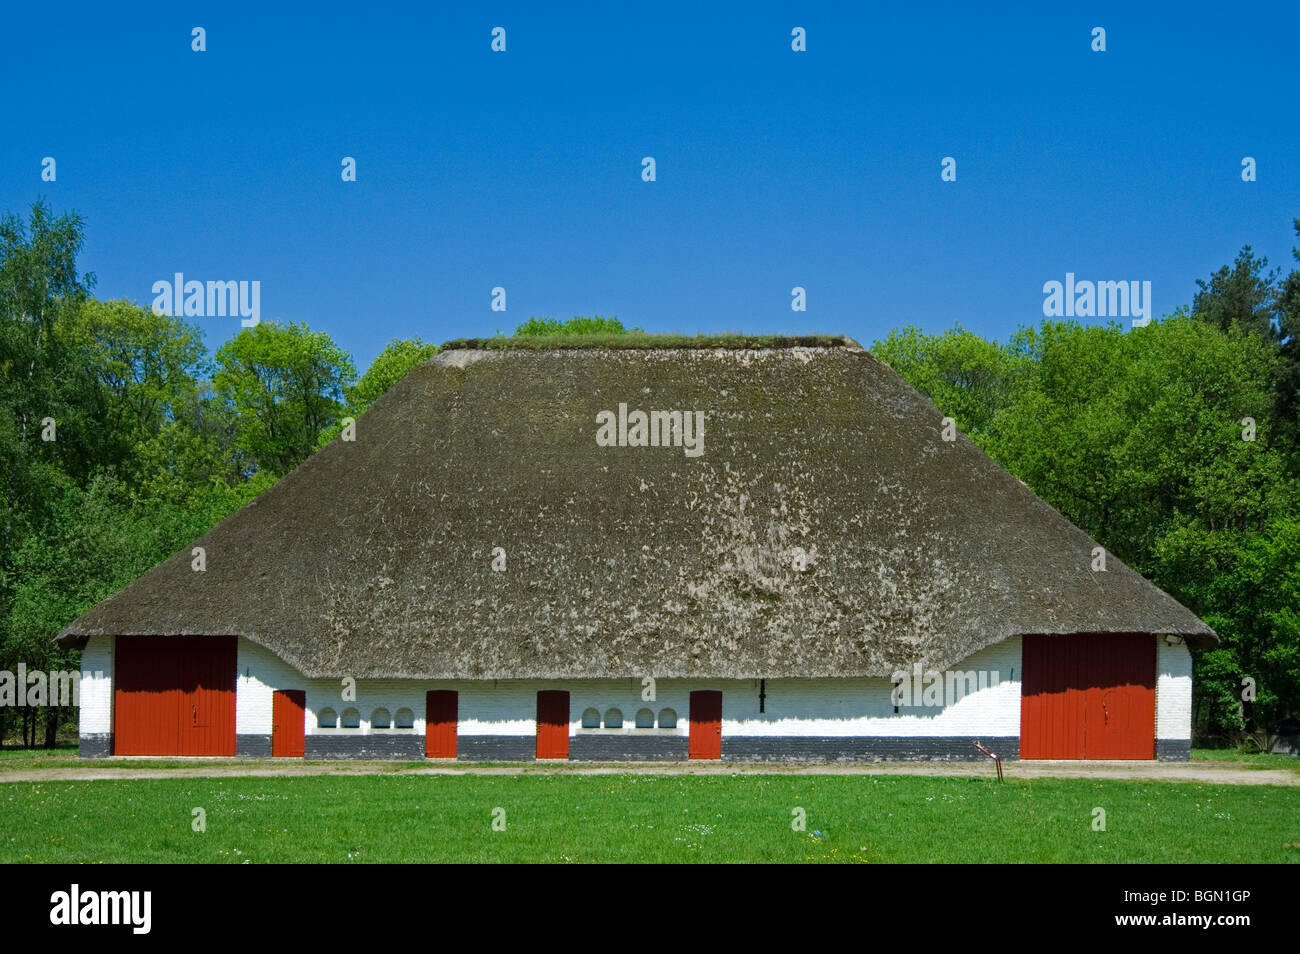 Traditional barn with thatched roof in the open air museum Bokrijk, Belgium Stock Photo